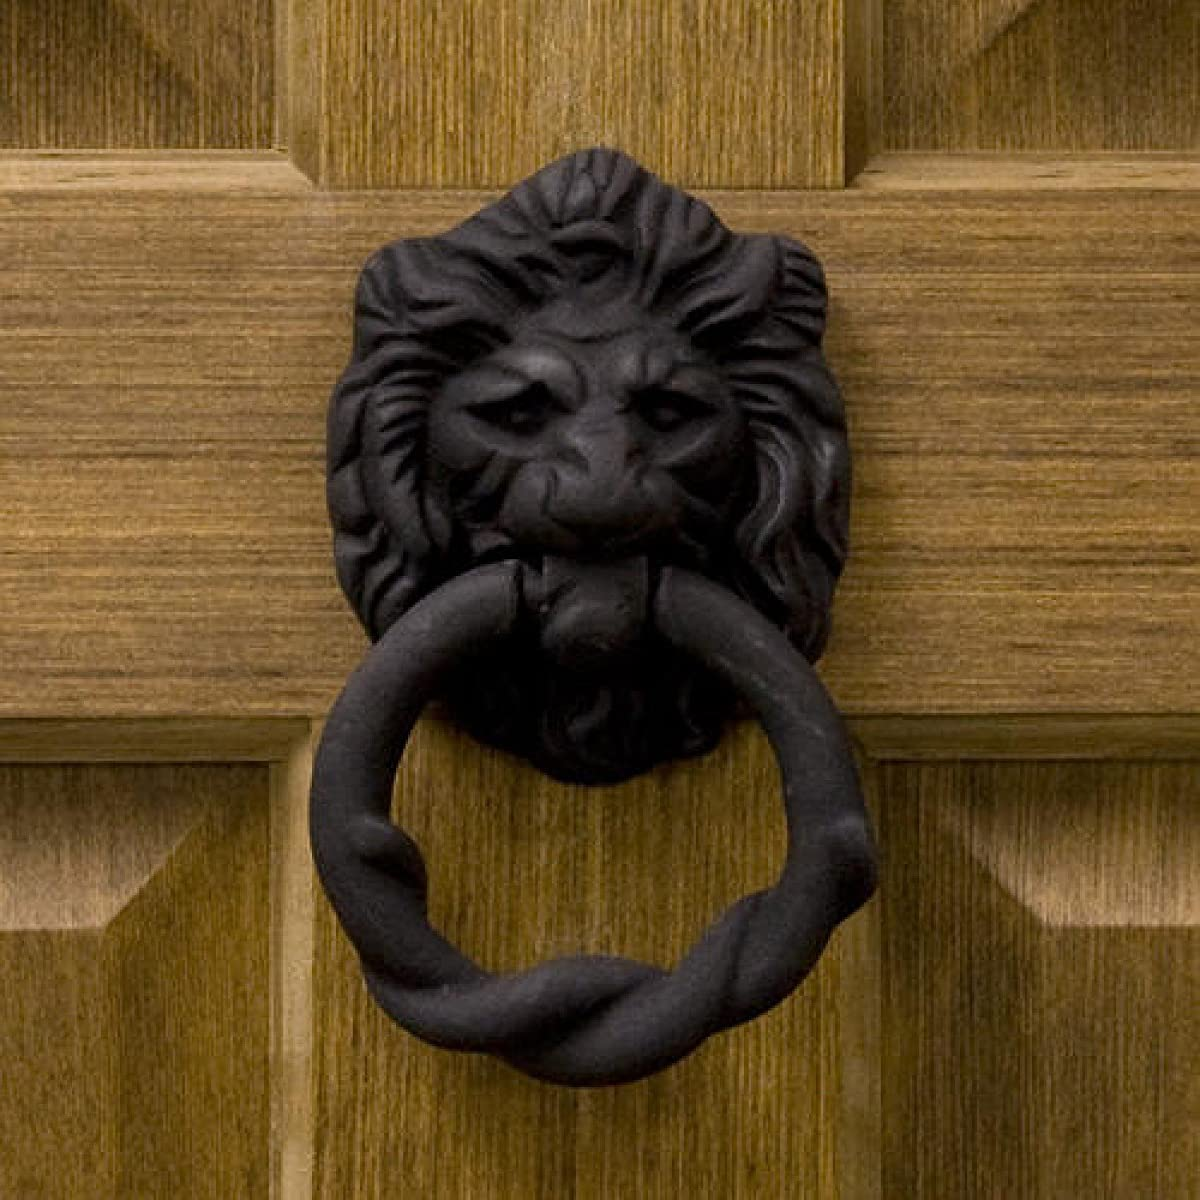 Casa Hardware Lion Head Iron Door Knocker in Black Powder Coat Finish